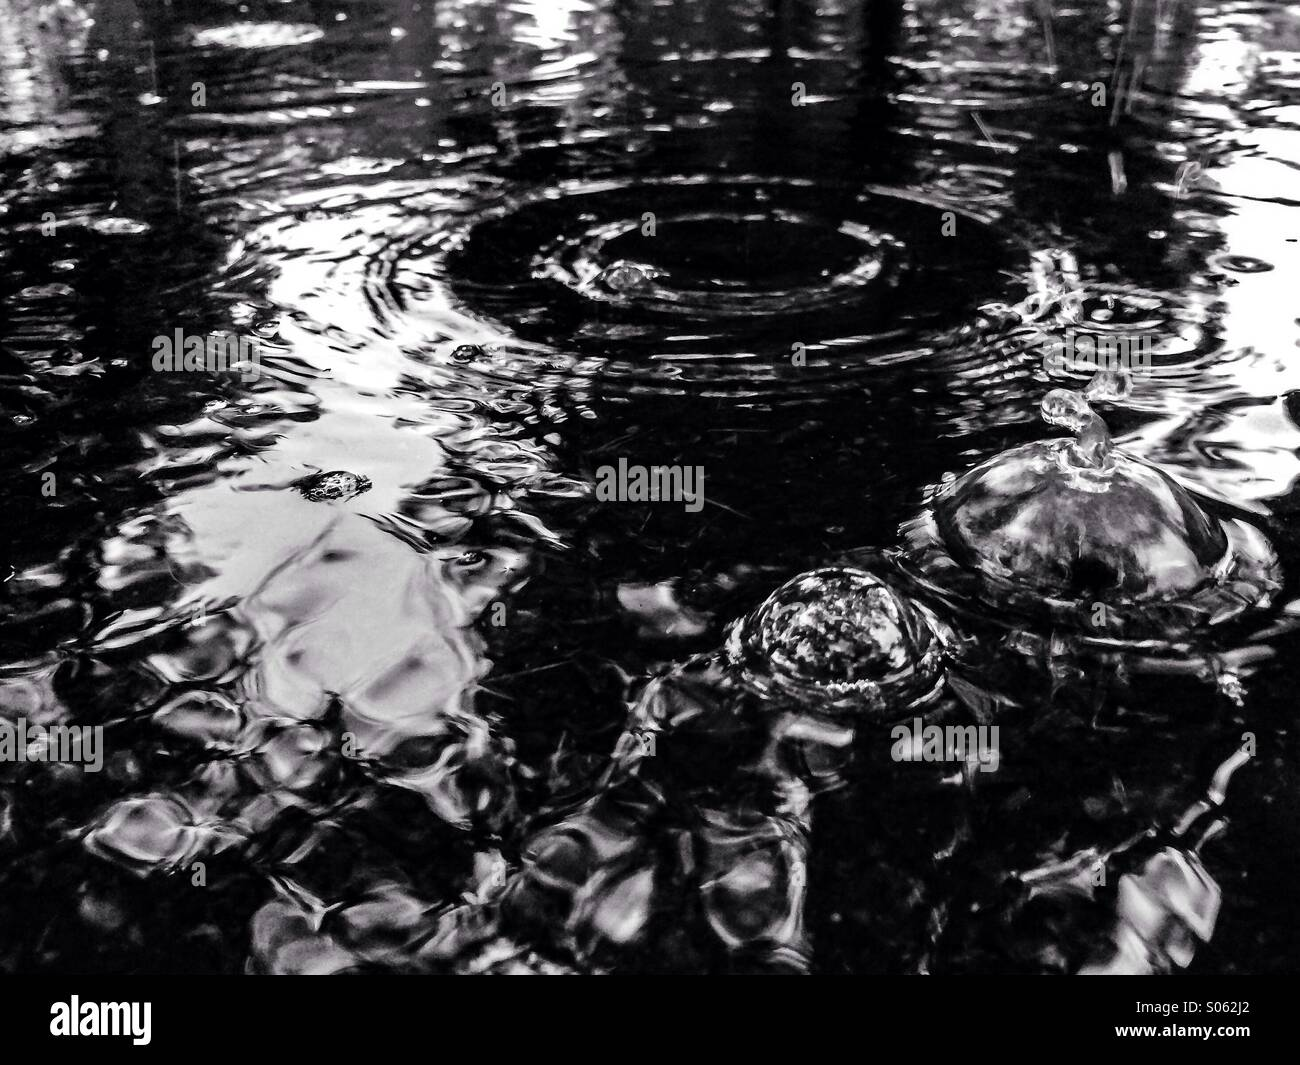 Rain puddle with bubbles - Stock Image